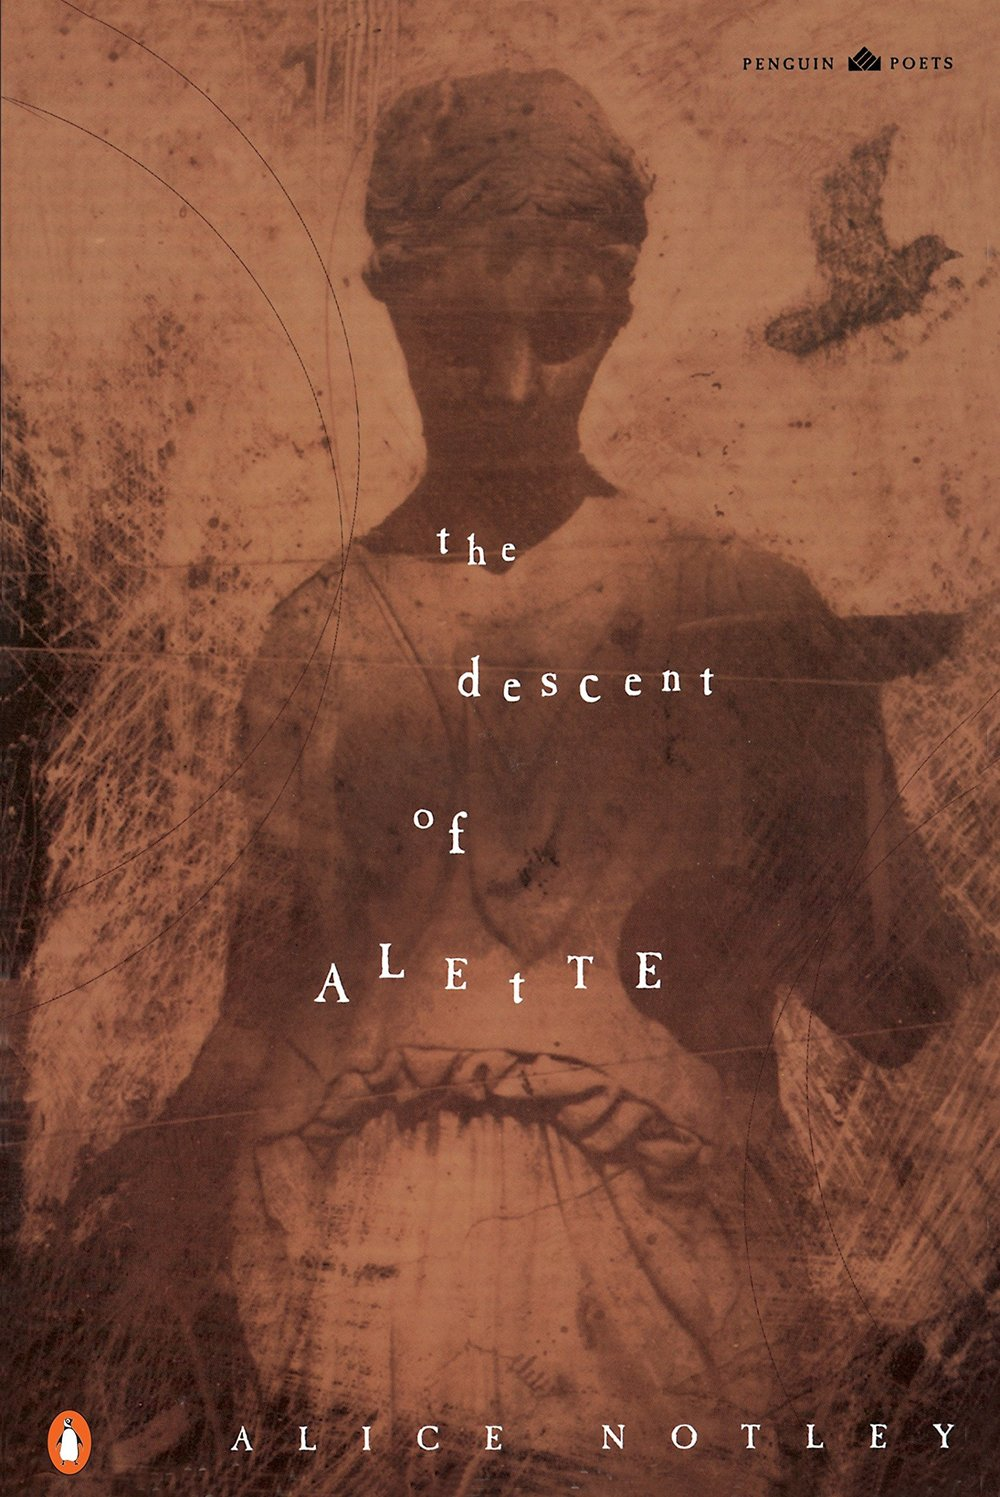 Alice Notley - The Descent of Alette